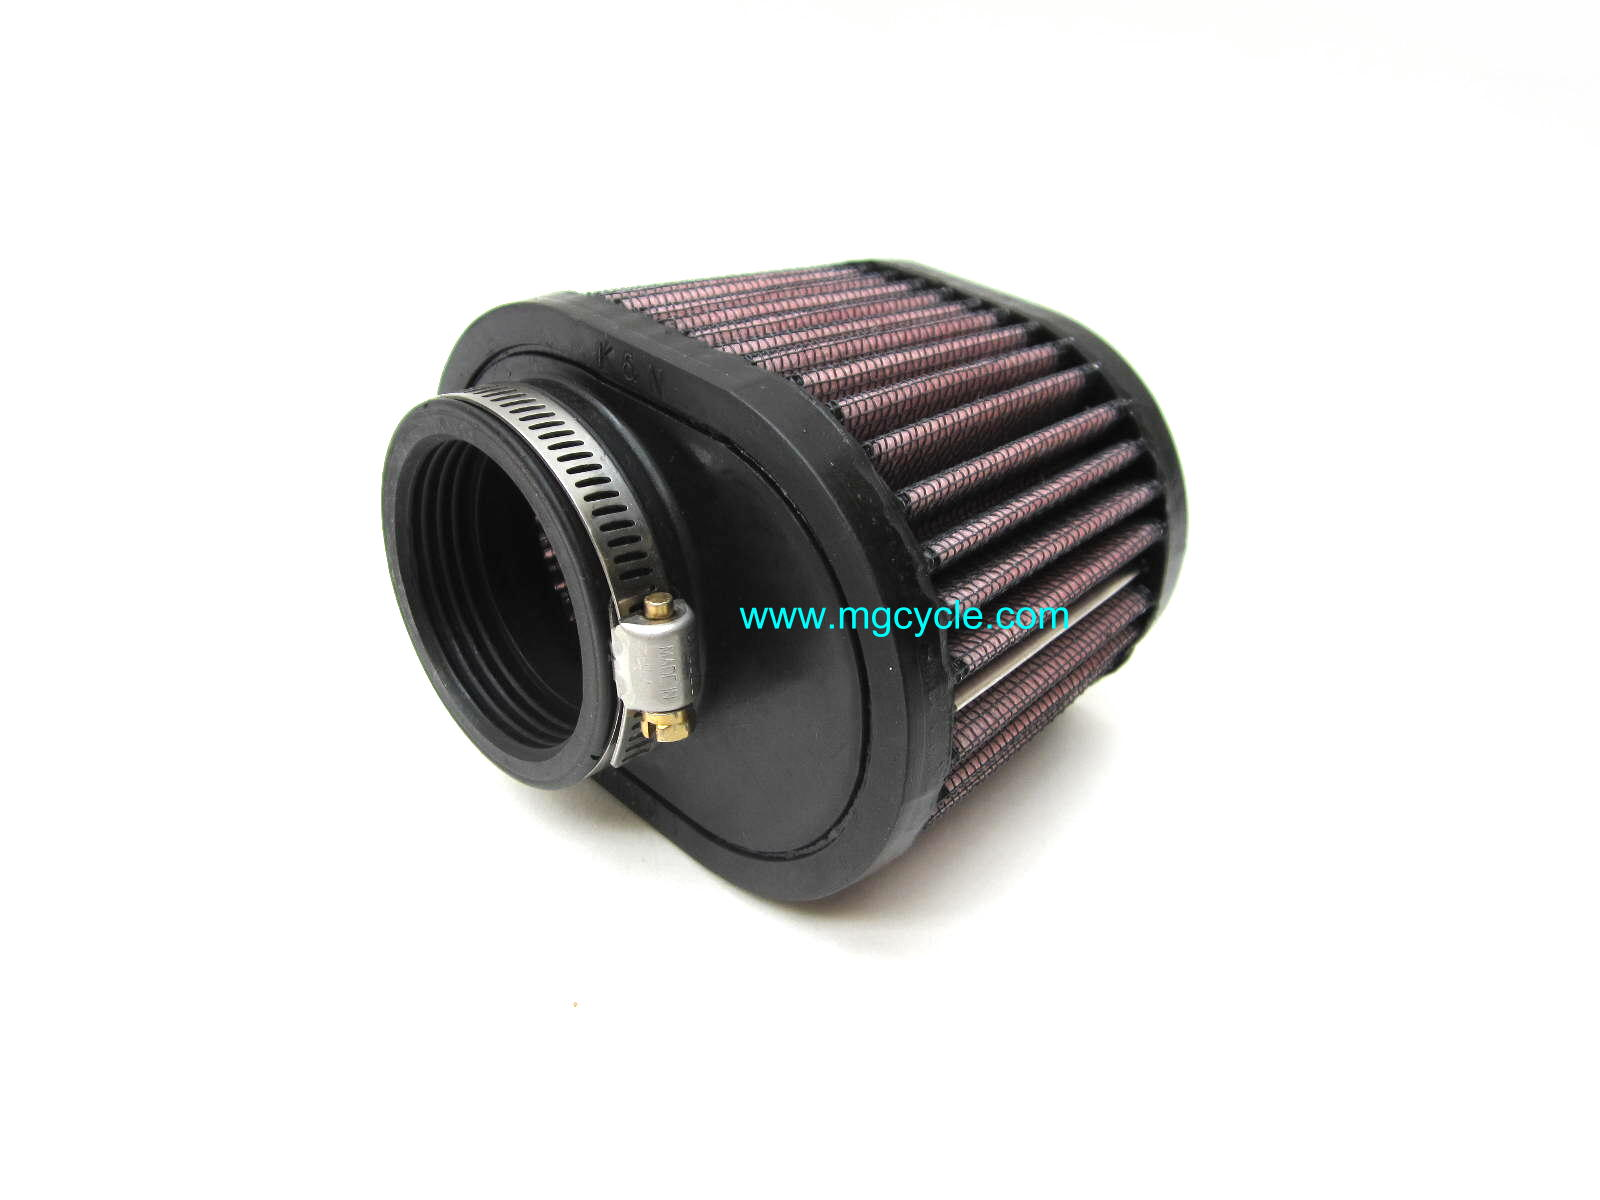 K&N air filter for PHF30/32/34/36 - T3 etc style velocity stacks